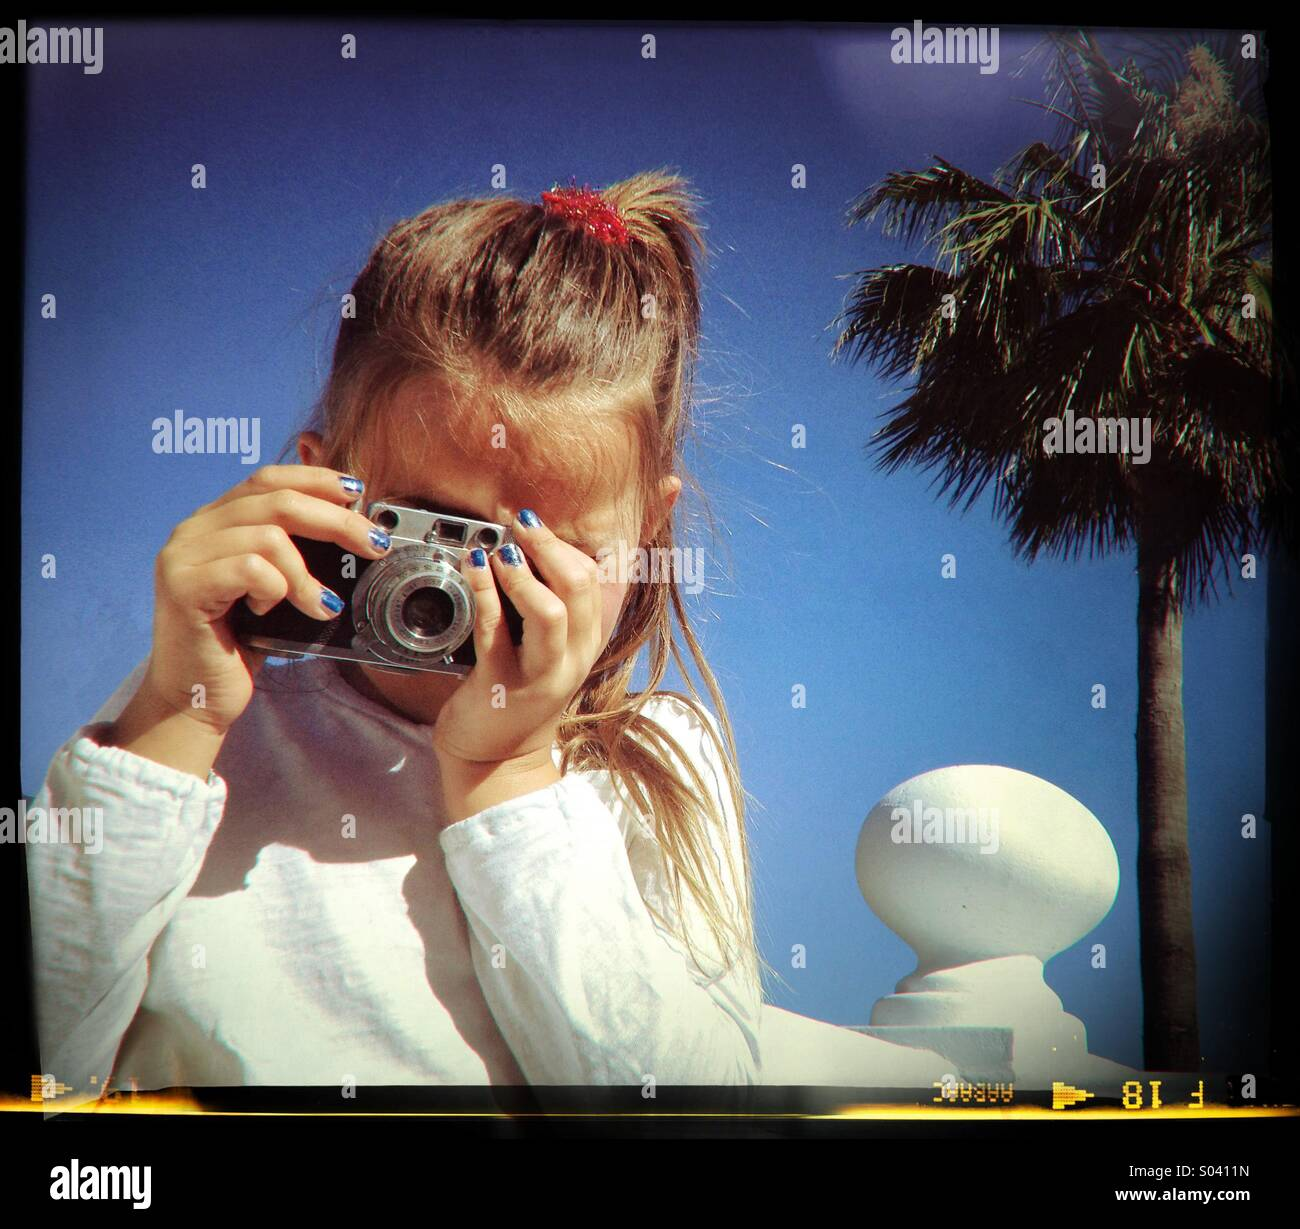 Six year old girl taking photograph with vintage camera. - Stock Image